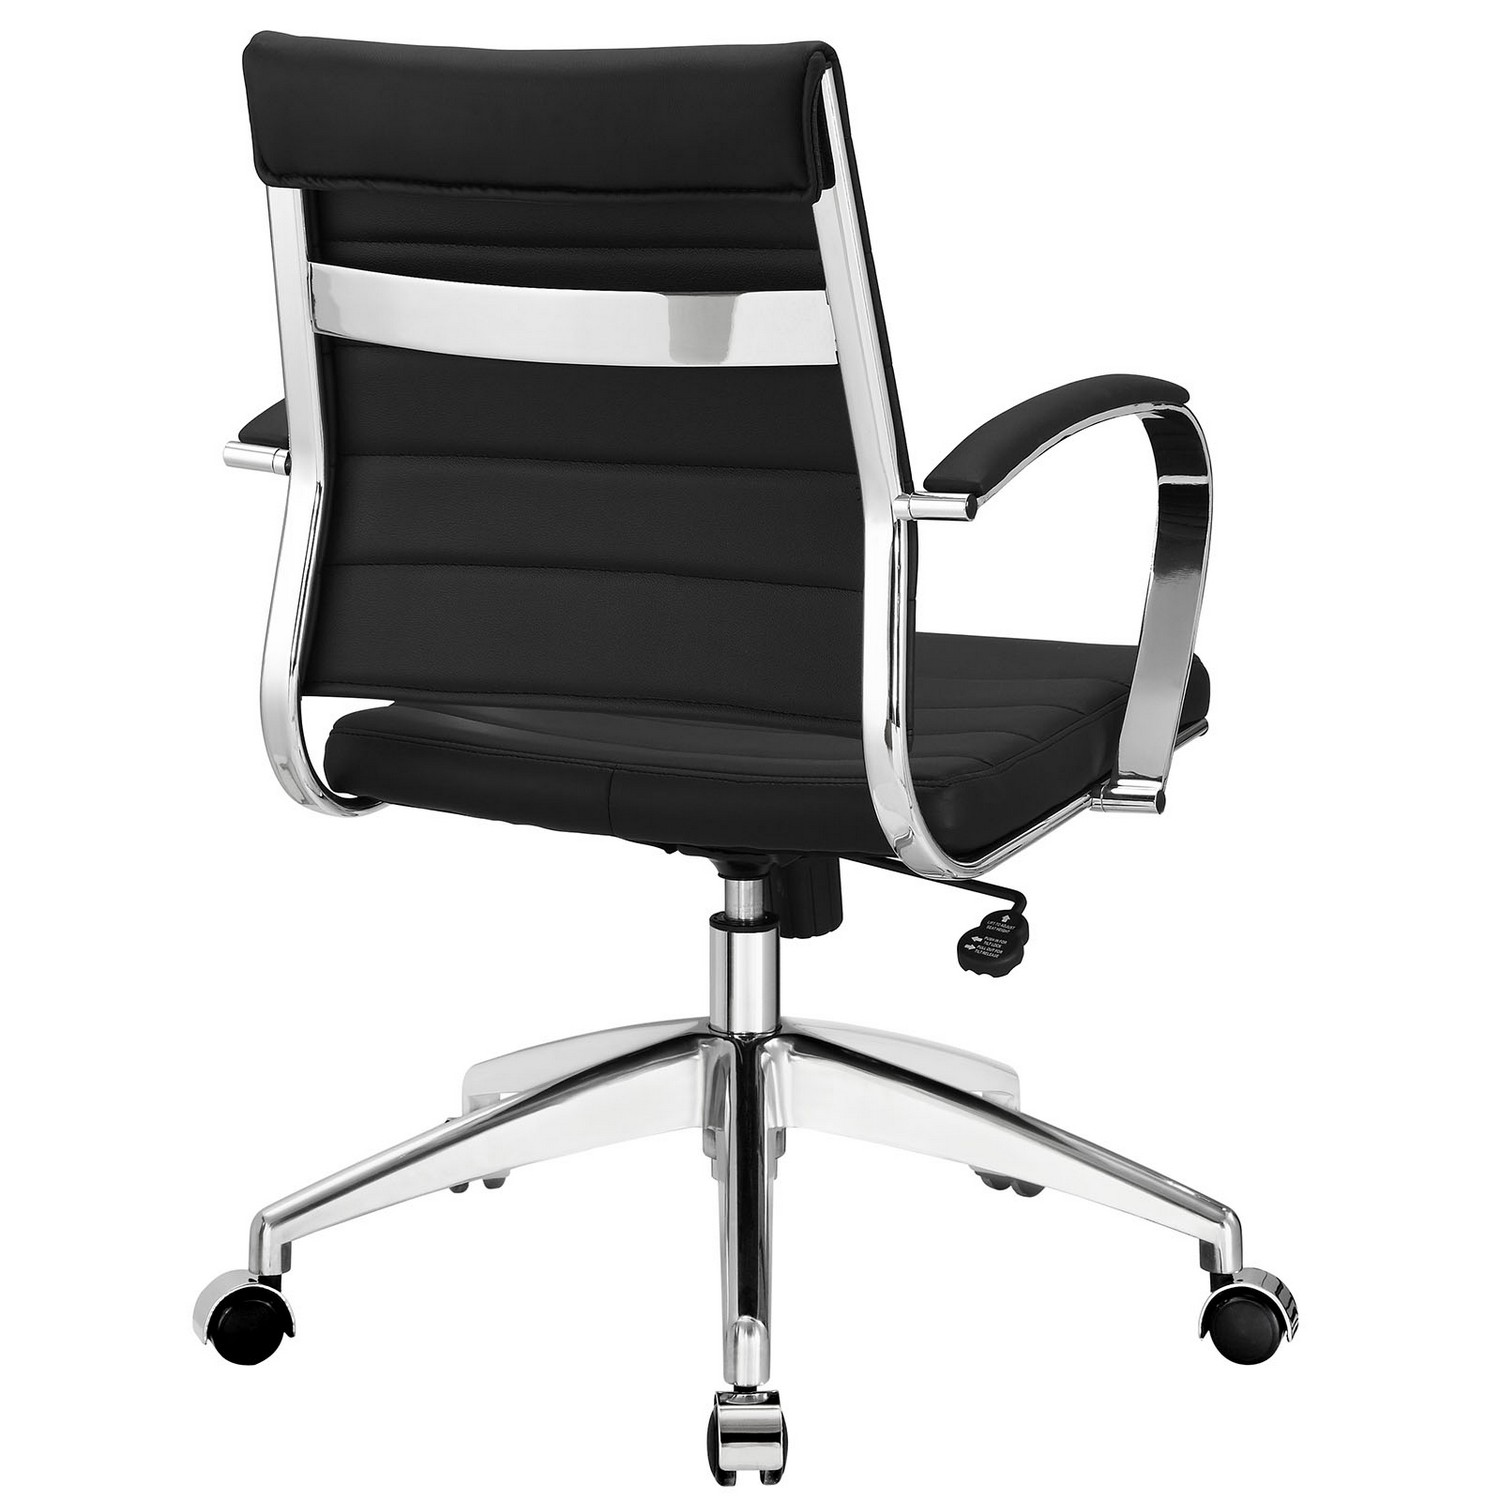 Modway Jive Mid Back Office Chair - Black